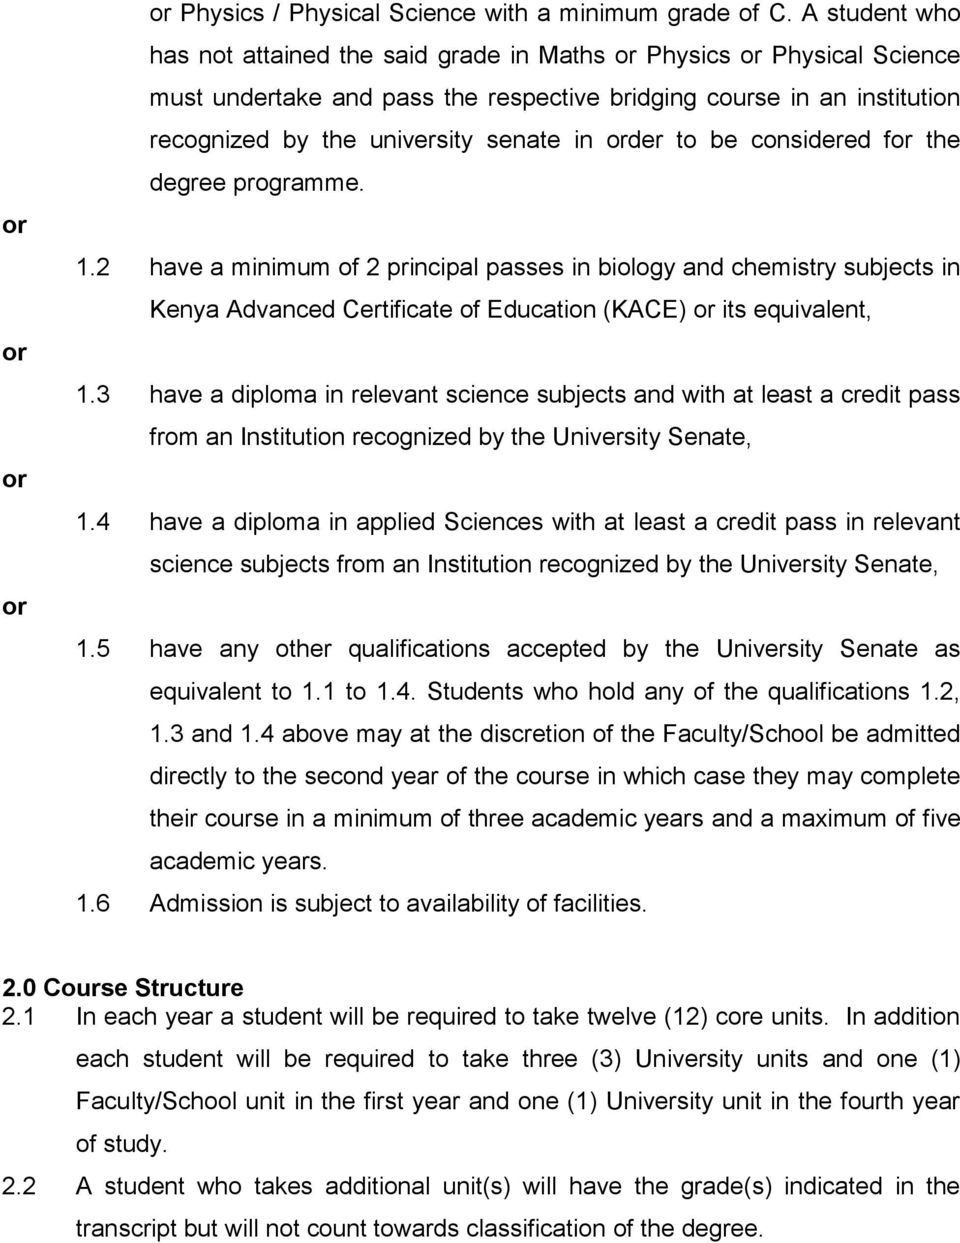 order to be considered for the degree programme. 1.2 have a minimum of 2 principal passes in biology and chemistry subjects in Kenya Advanced Certificate of Education (KACE) or its equivalent, 1.